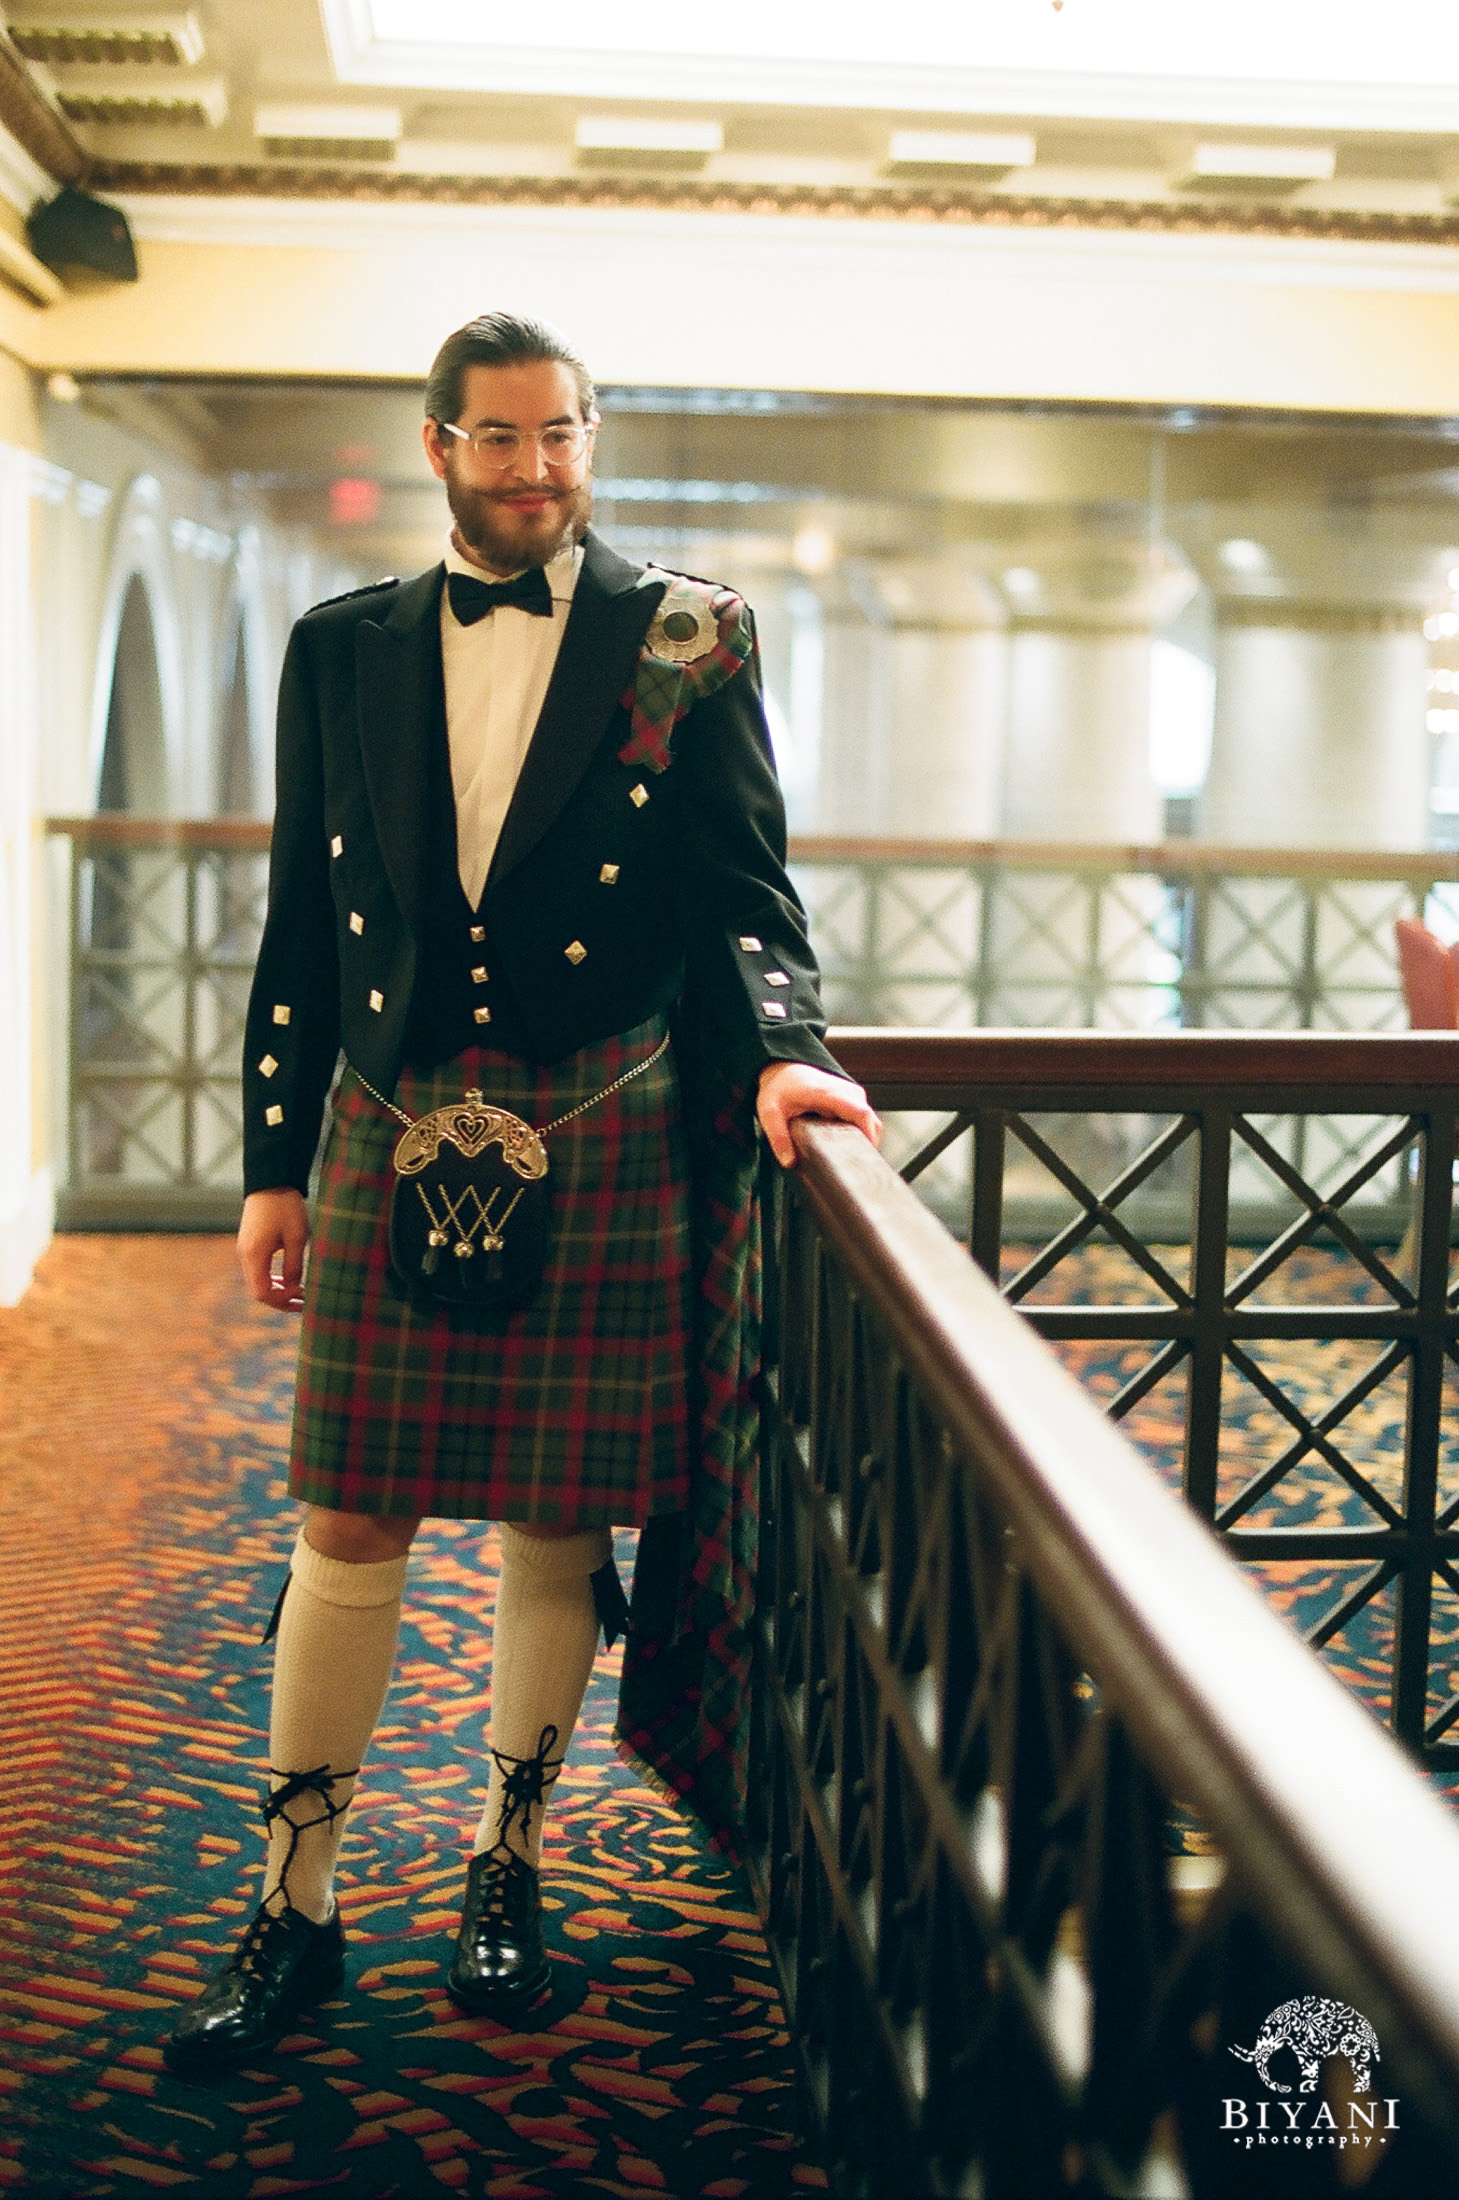 Mustachioed groom rocking a kilt for his wedding